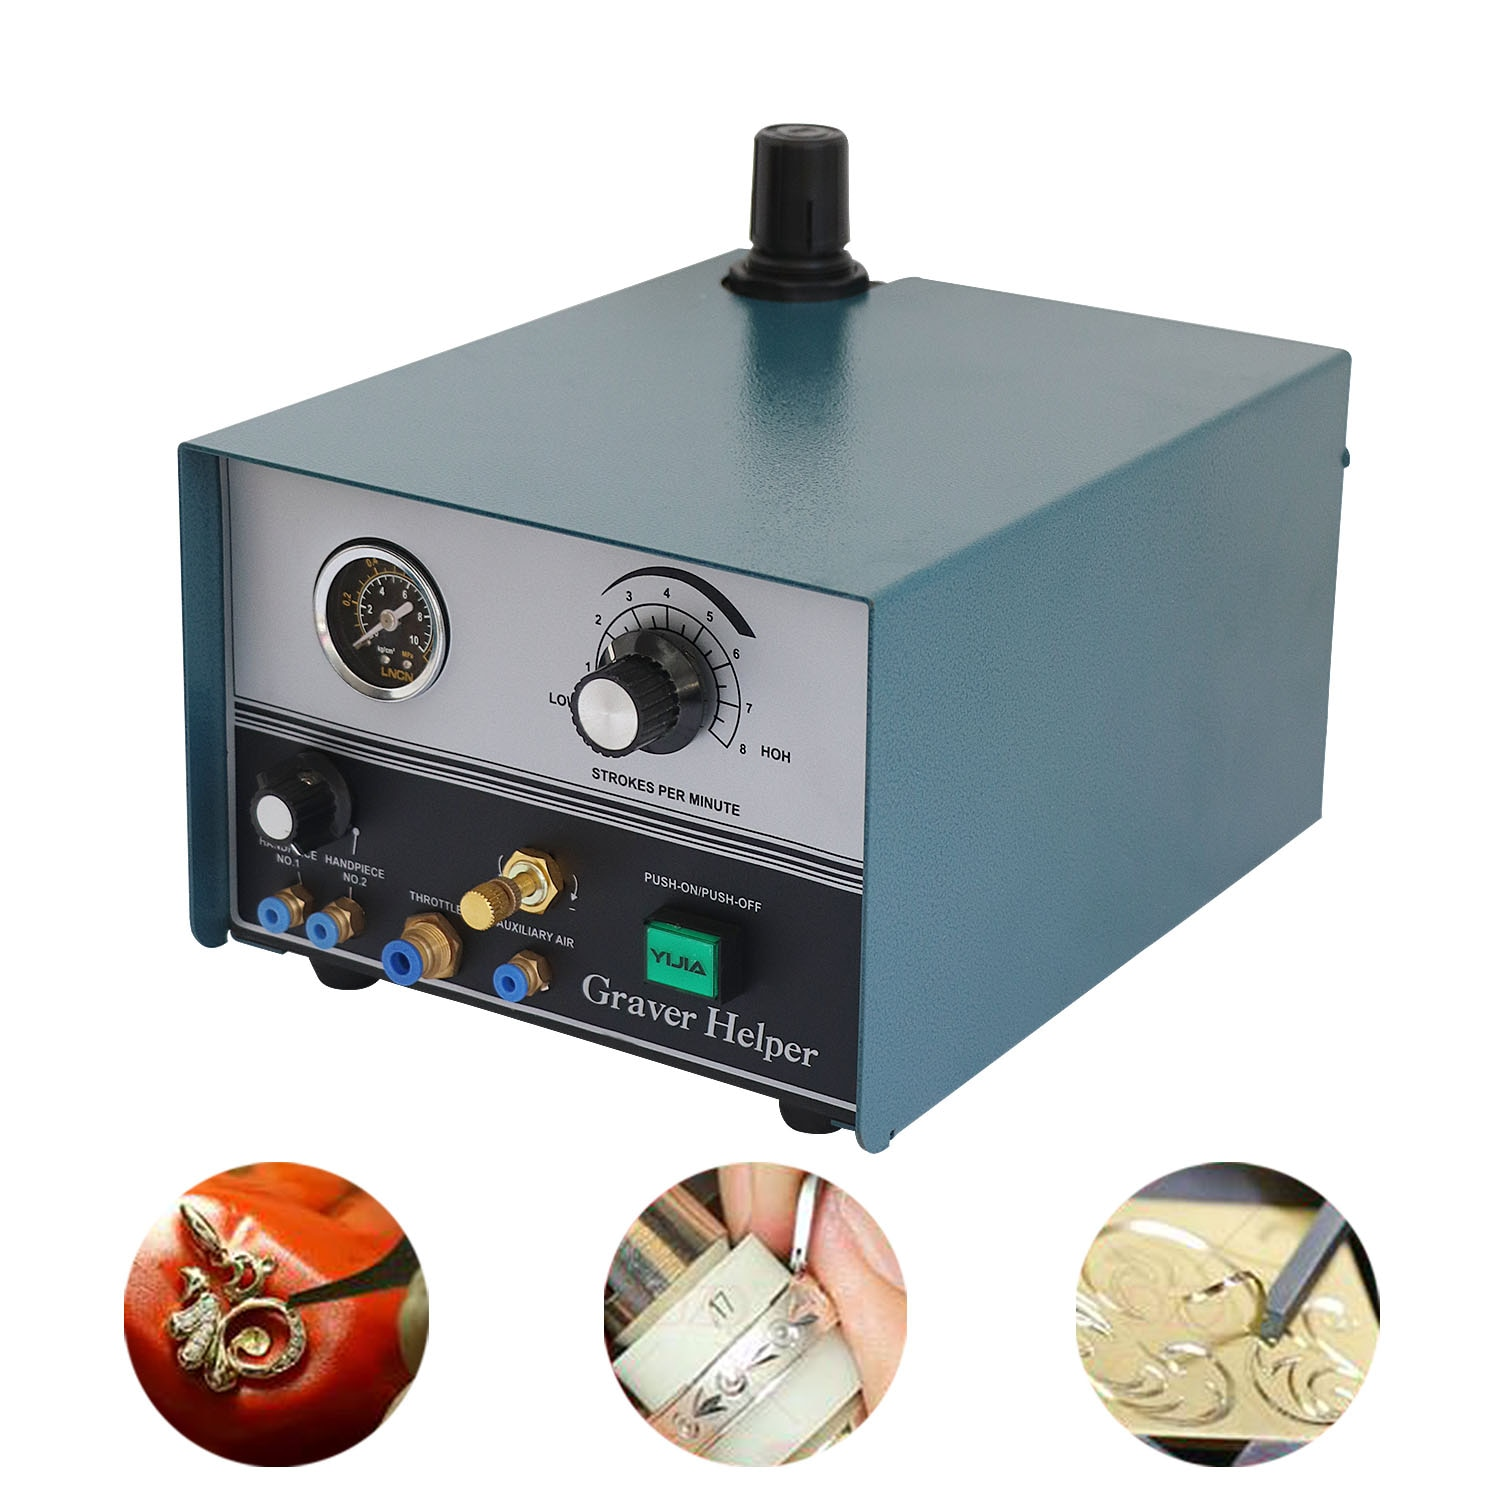 110V/220V Graver Helper Pneumatic Engraving Machine Double-Ended Reel Bead Edge Machine with Two Handpieces Jewelry Tools